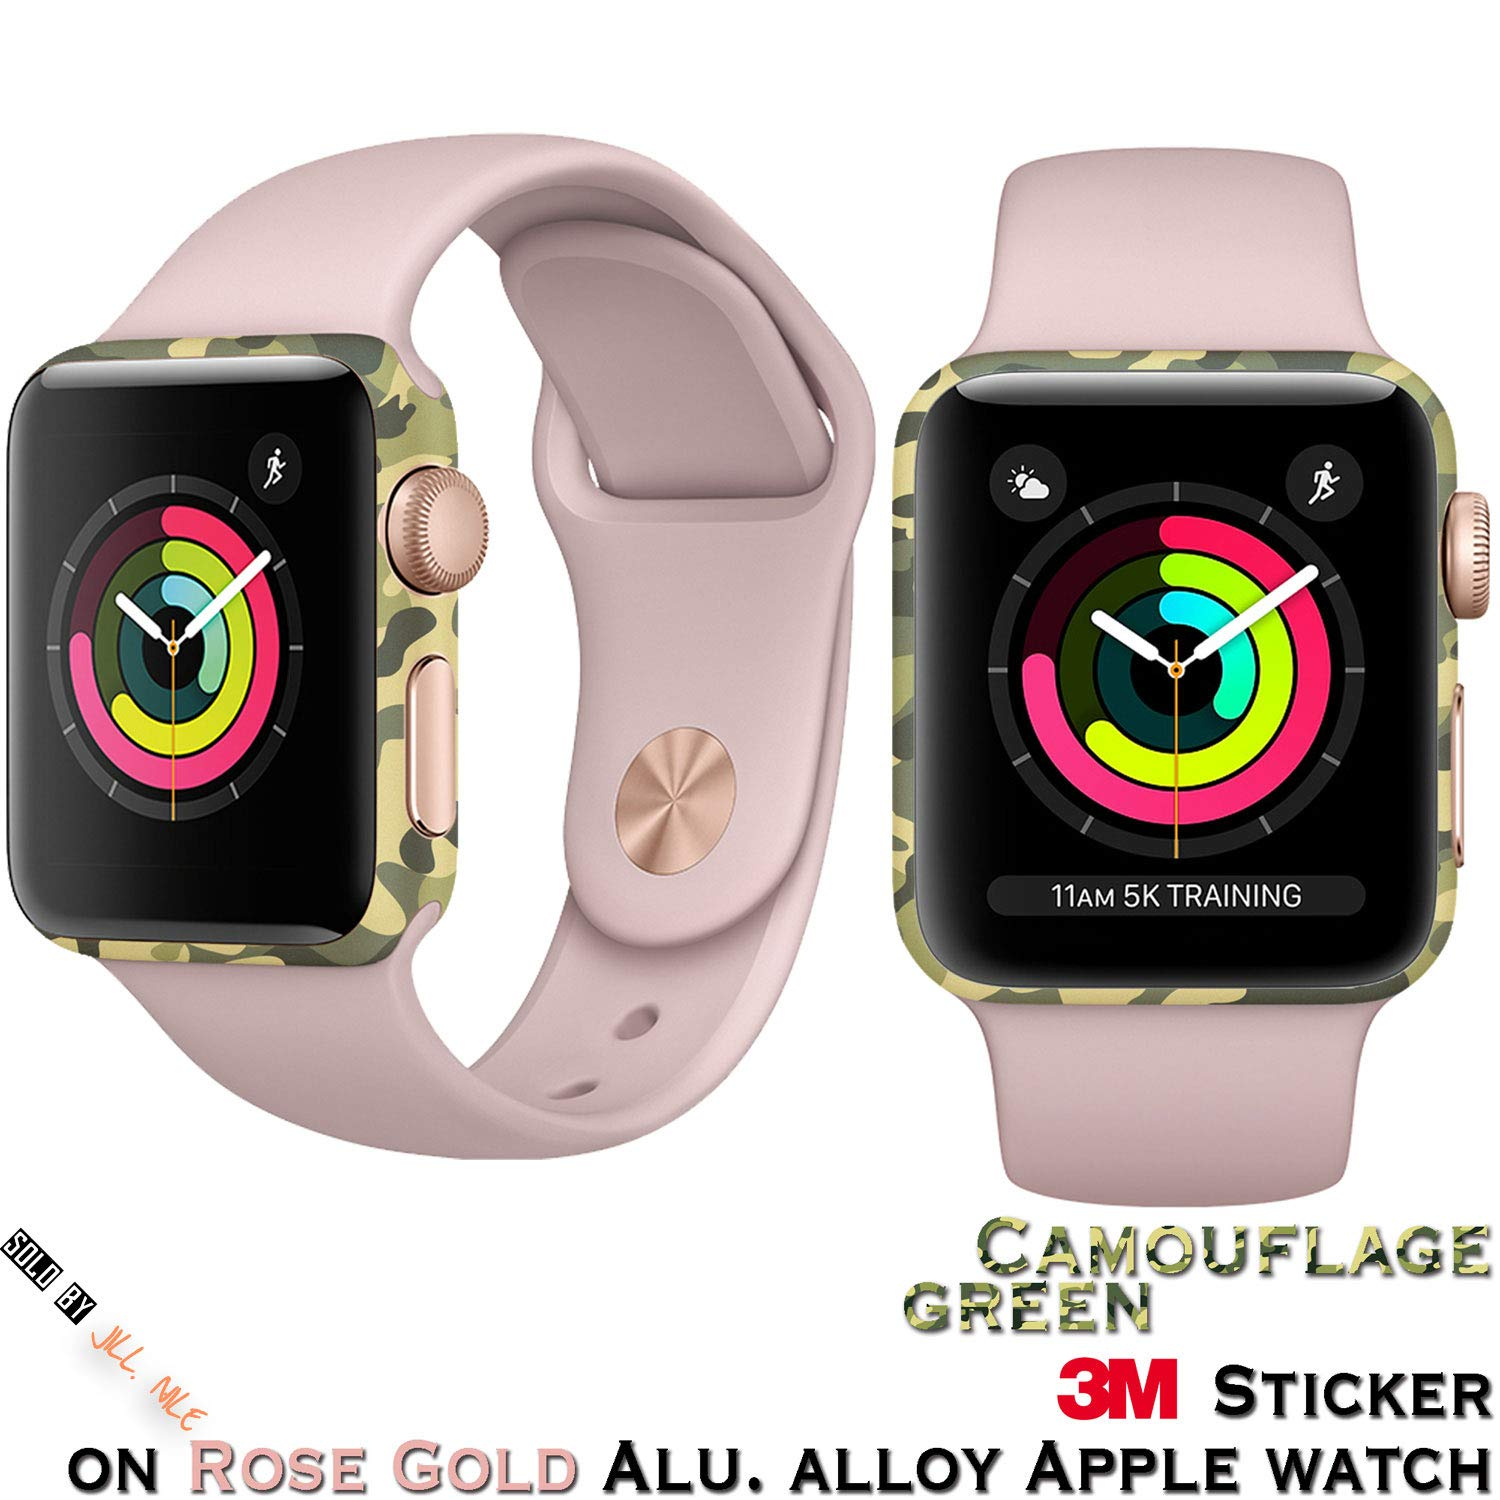 for Apple Watch Series 3 38mm Skin Protector for Protect The iWatch Body for Anti-Oxidation (Green Camouflage) by Dragon Dream